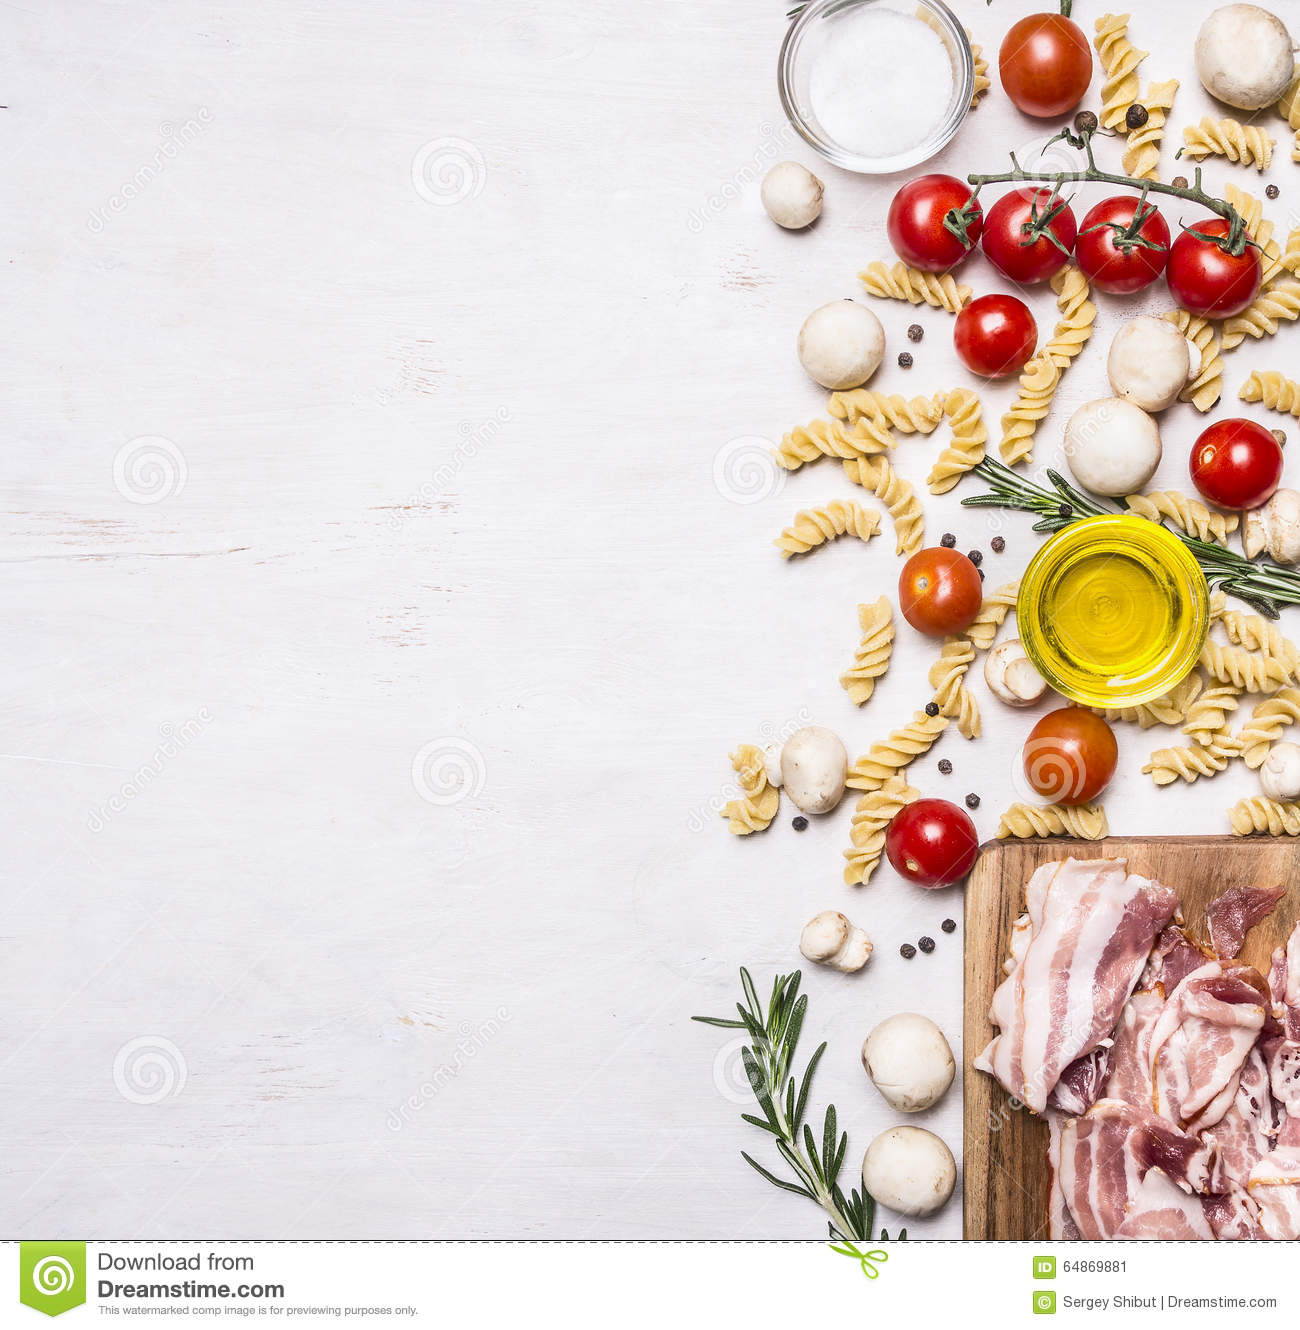 Ingredients for cooking fusilli pasta with bacon vegetables, spices and herbs border, place text on wooden rustic background